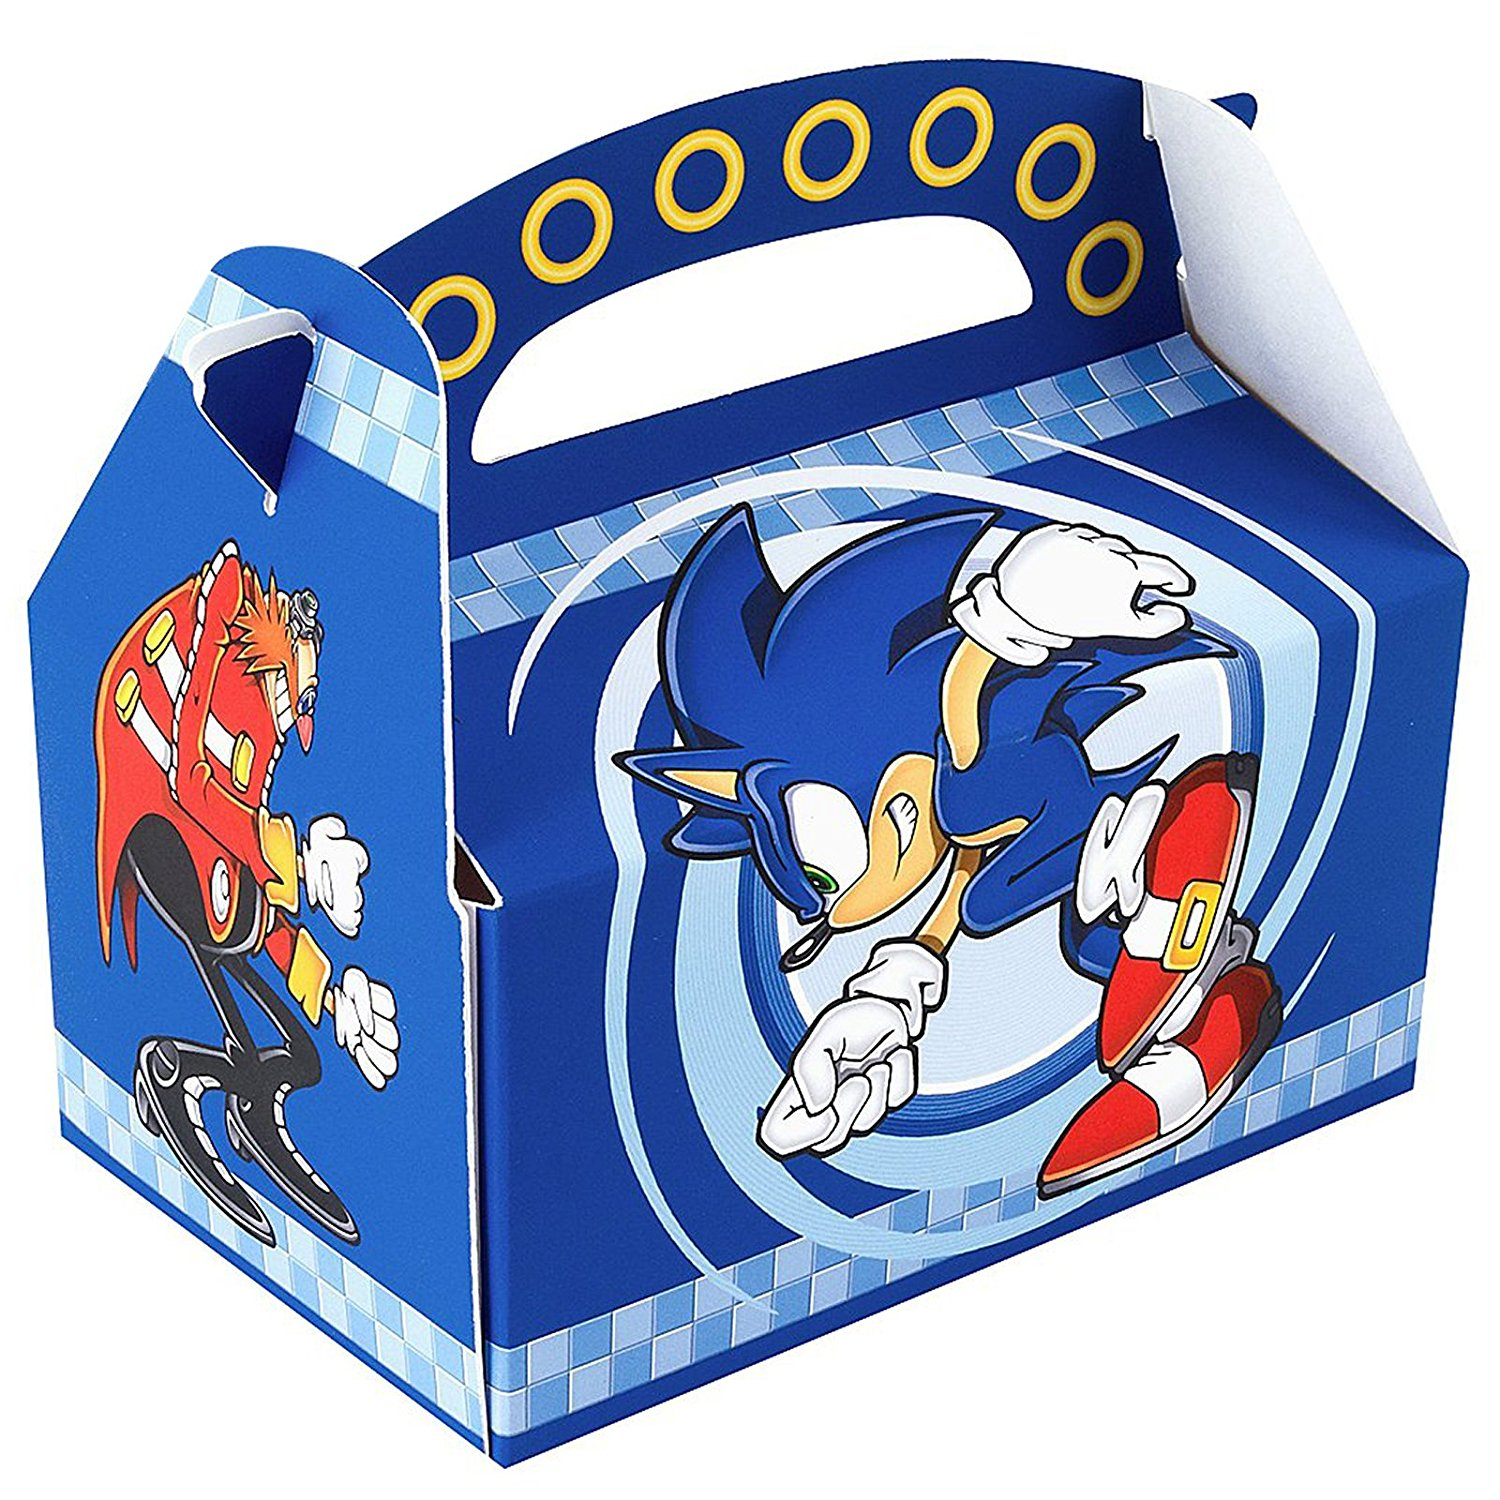 Sonic The Hedgehog Party Supplies Empty Favor Boxes 4 Includes 4 Empty Favor Boxes Made Of Cardboard And Measures 6 X 4 X 3 In Size By Birthdayexpress Walmart Com Walmart Com